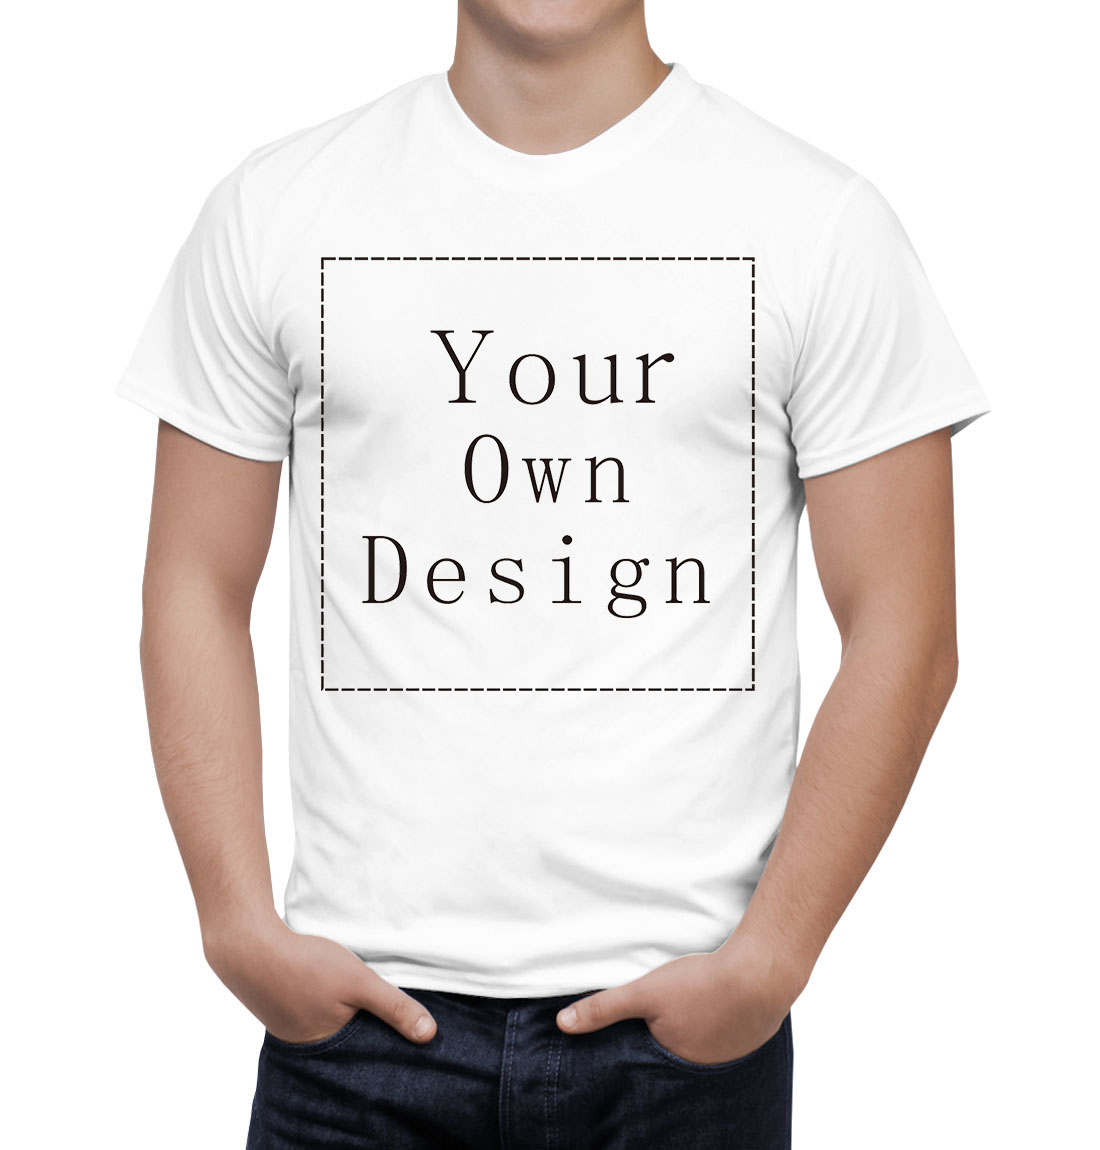 Design your own t shirt good quality - Customized Men S T Shirt Print Your Own Design High Quality Fast Ship China Mainland